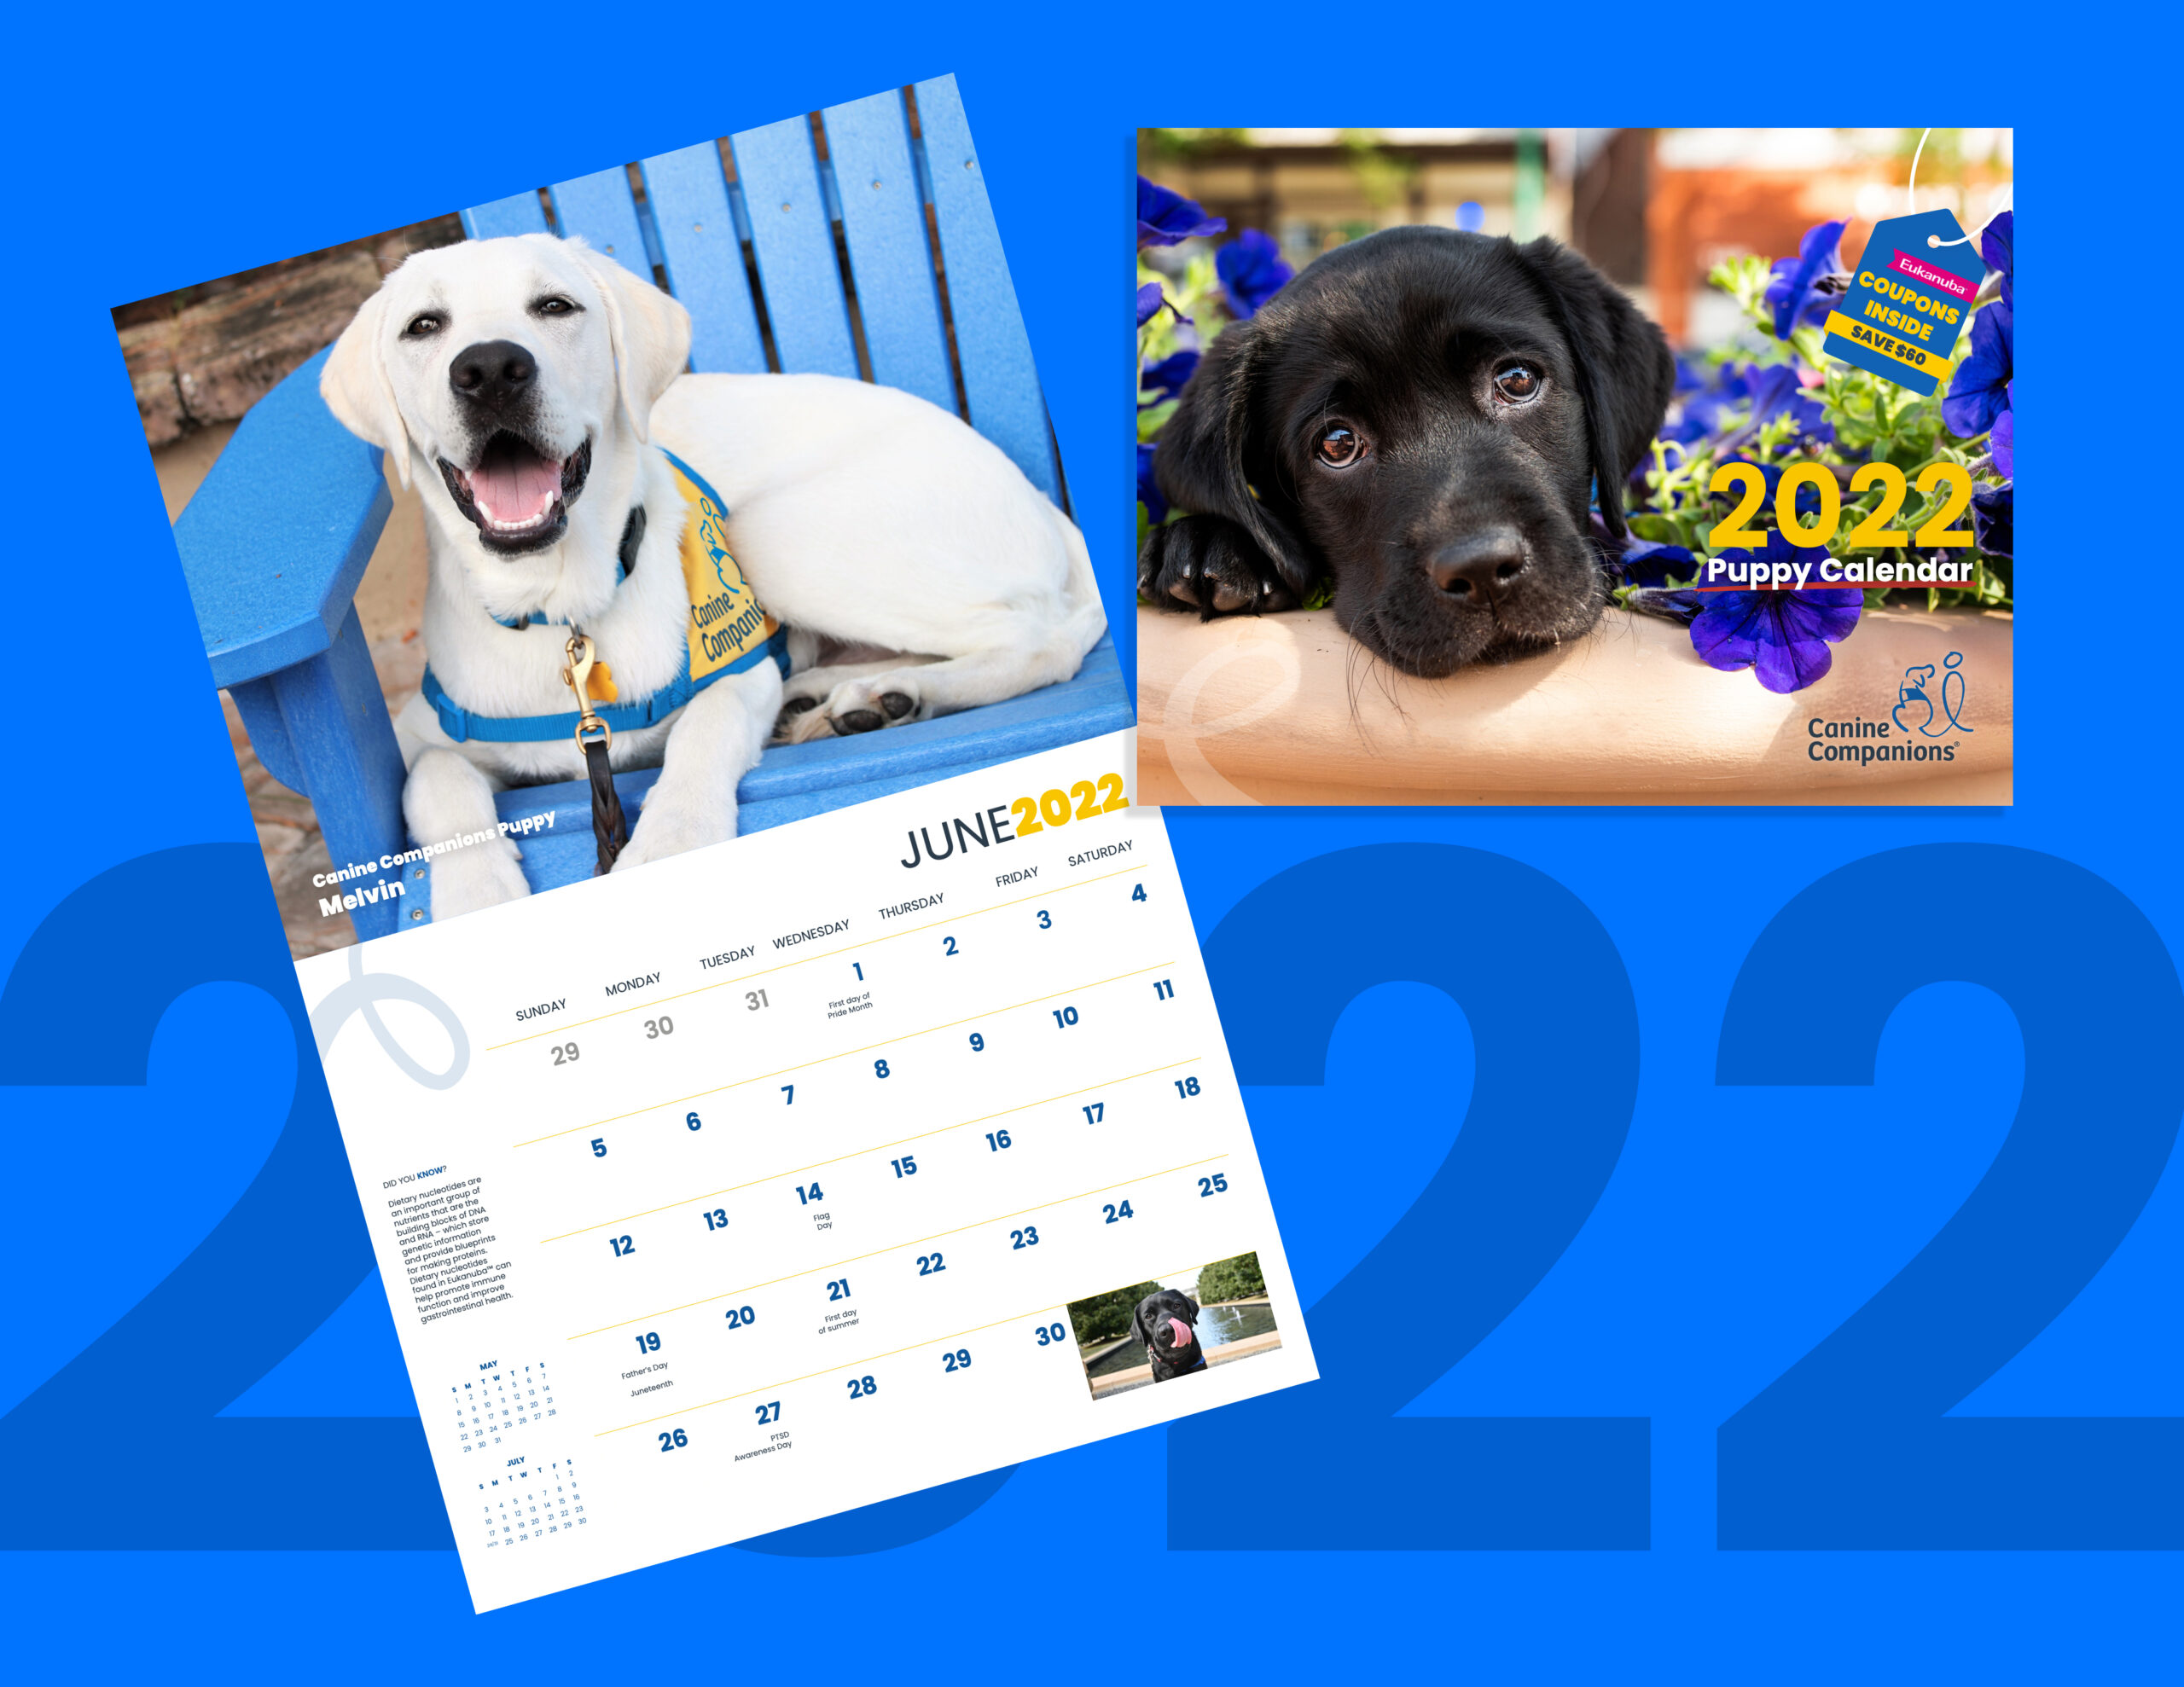 image showing the 2022 canine companions puppy calendar